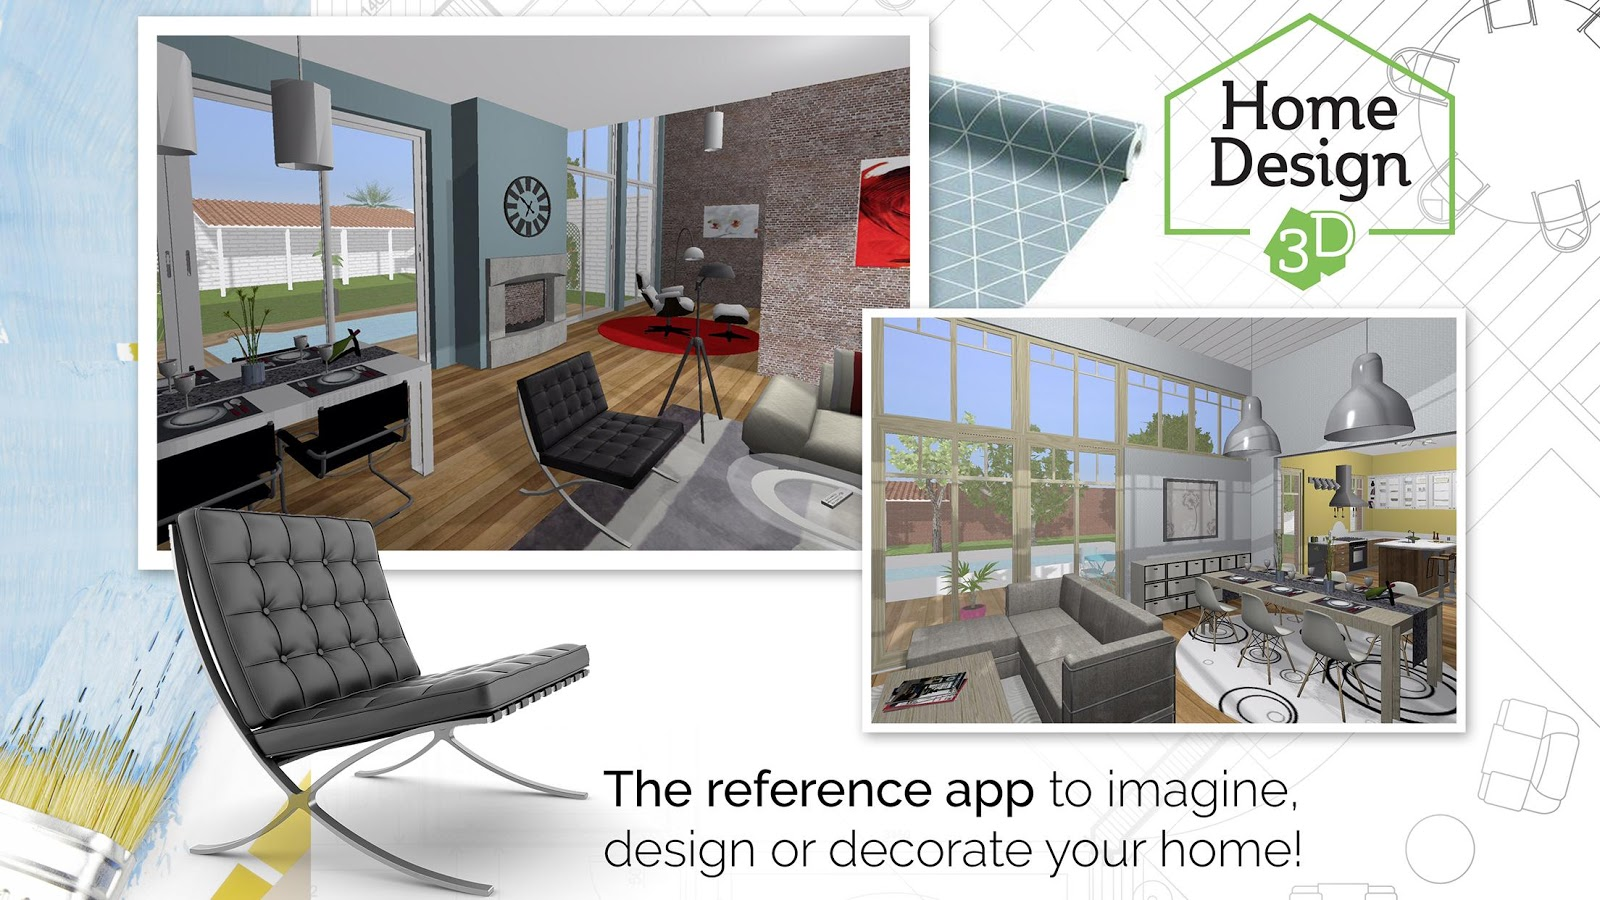 home design 3d freemium android apps on google play dreamplan home design free for android download by nch software at